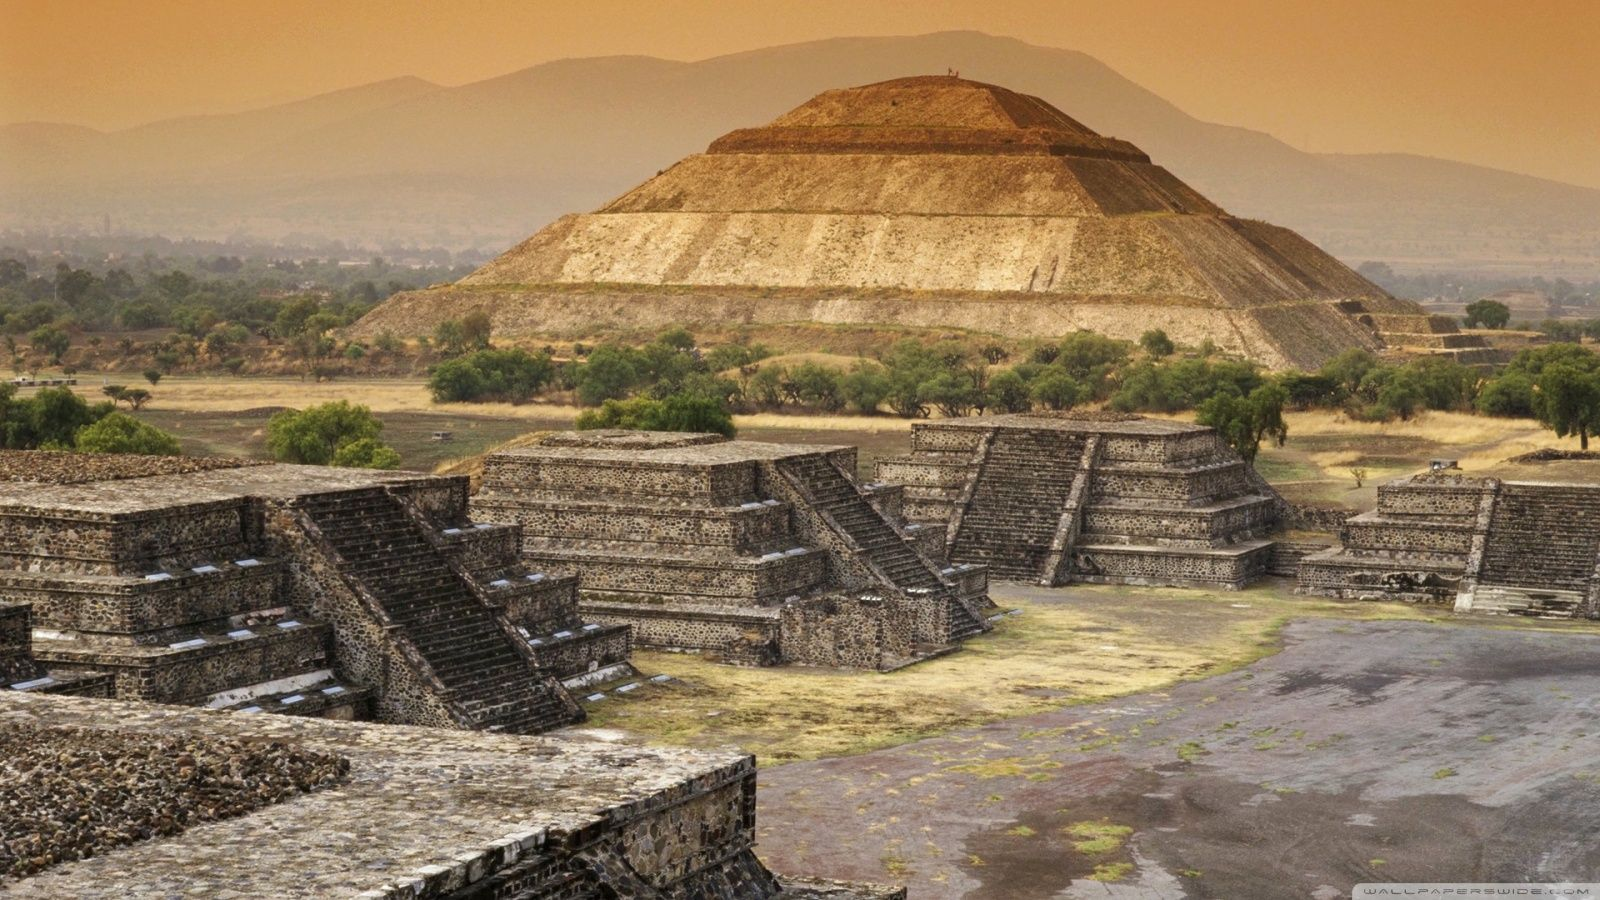 Download Pyramid Of The Sun, Teotihuacan, Mexico HD